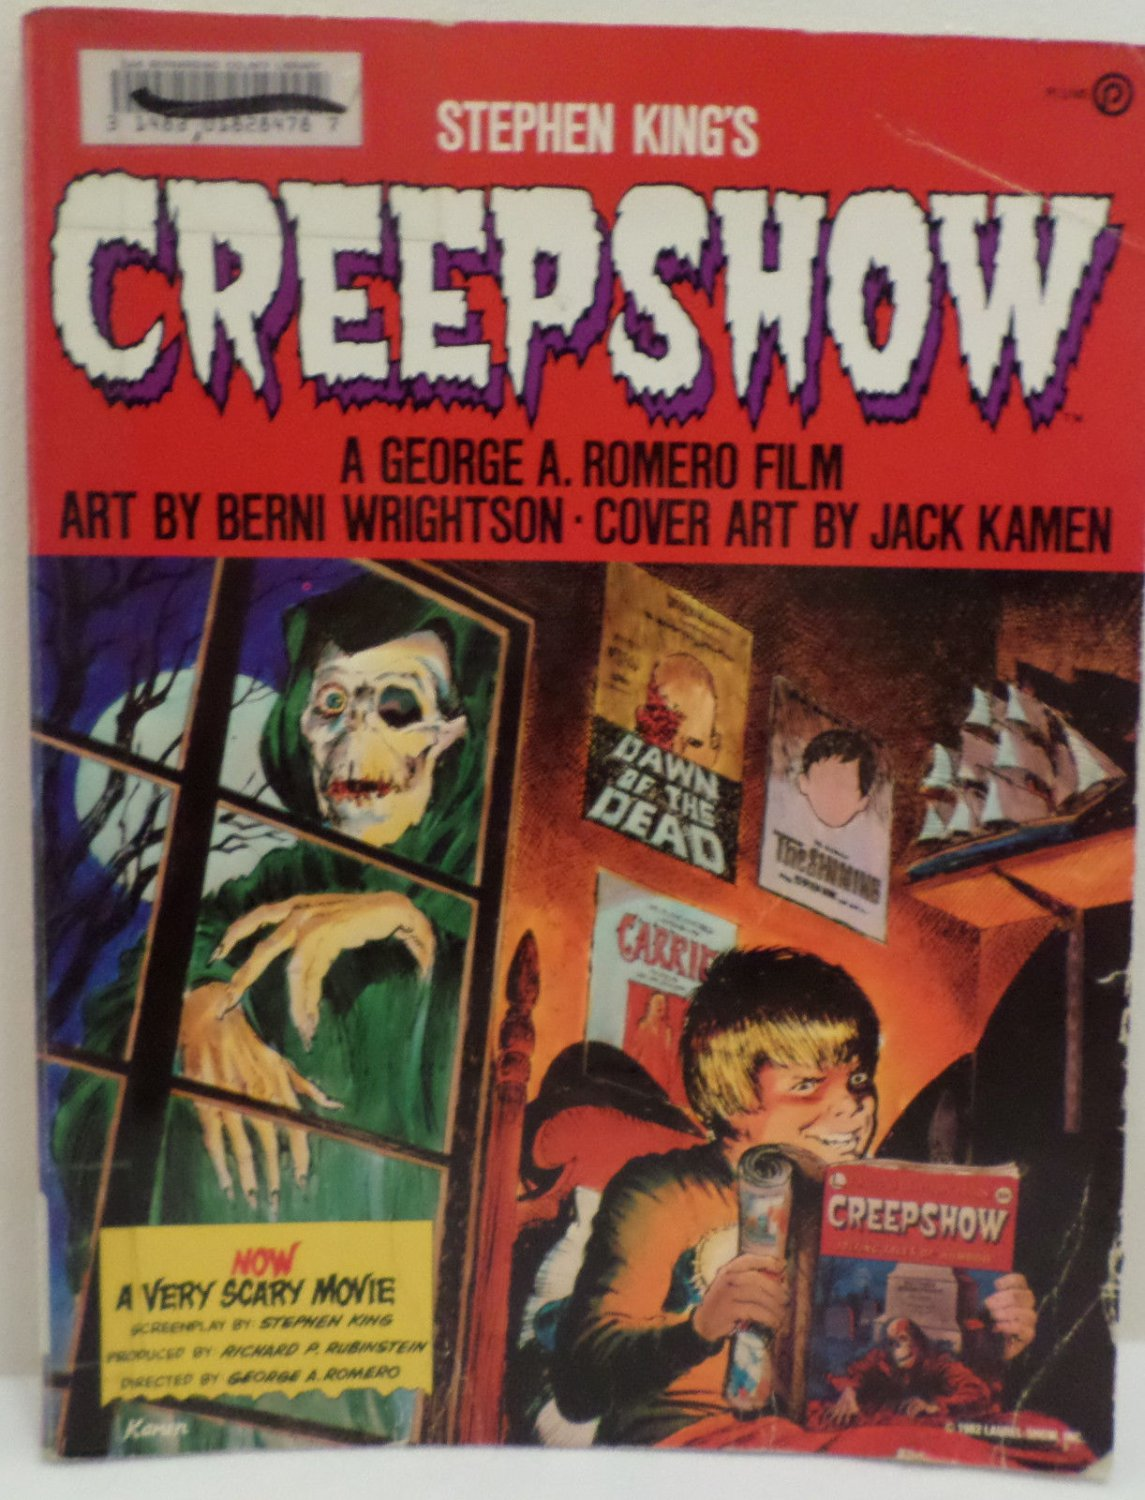 Creepshow by Stephen King A George A Romero Film Penguin Publishing 1982